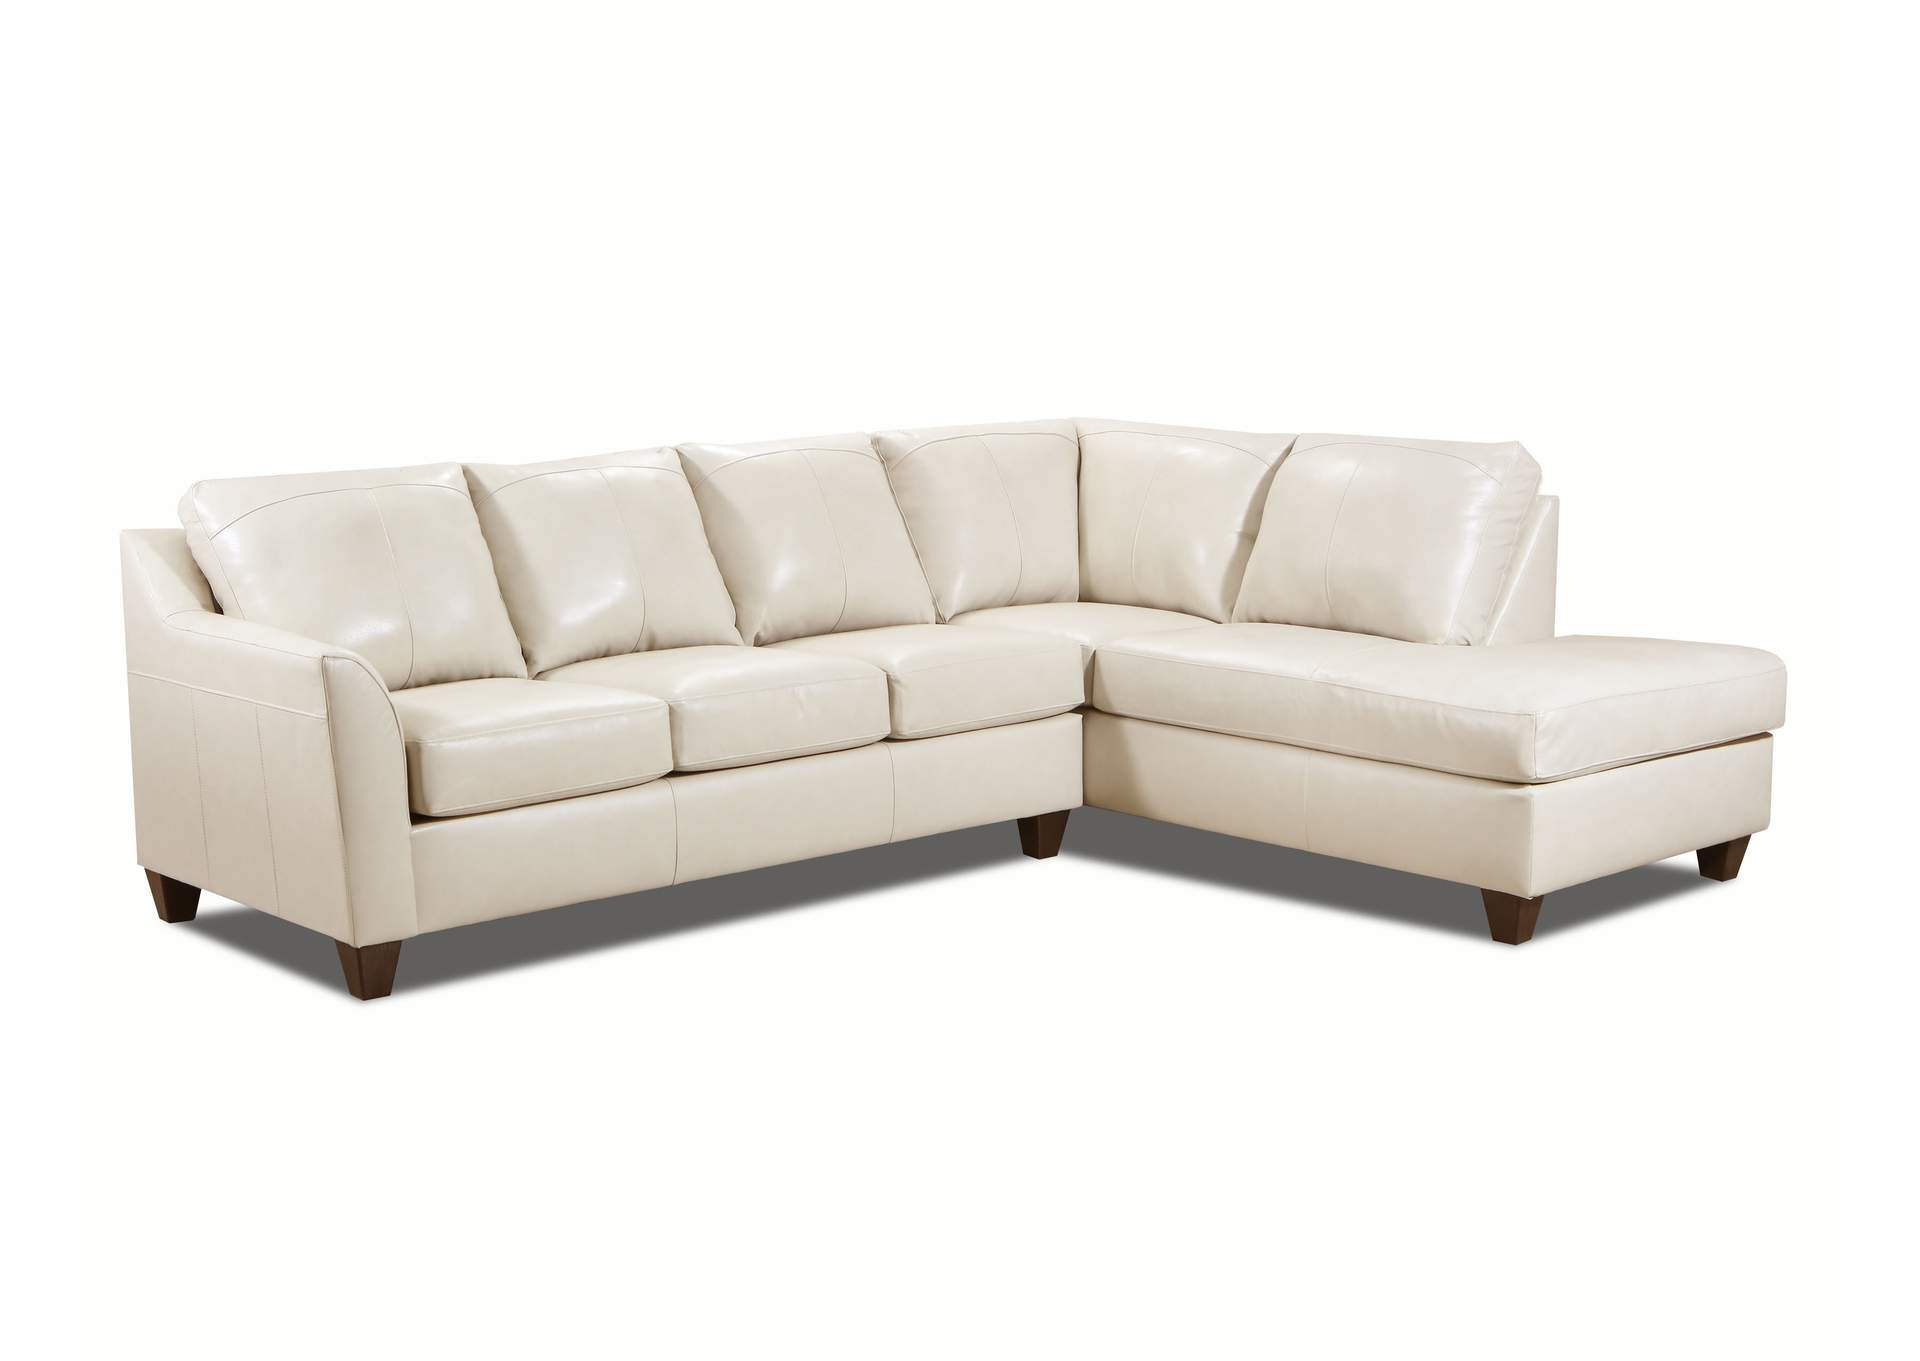 2029 Dundee Two Piece Sectional with RAF Bump Chaise - Soft Touch Cream,Lane Furniture